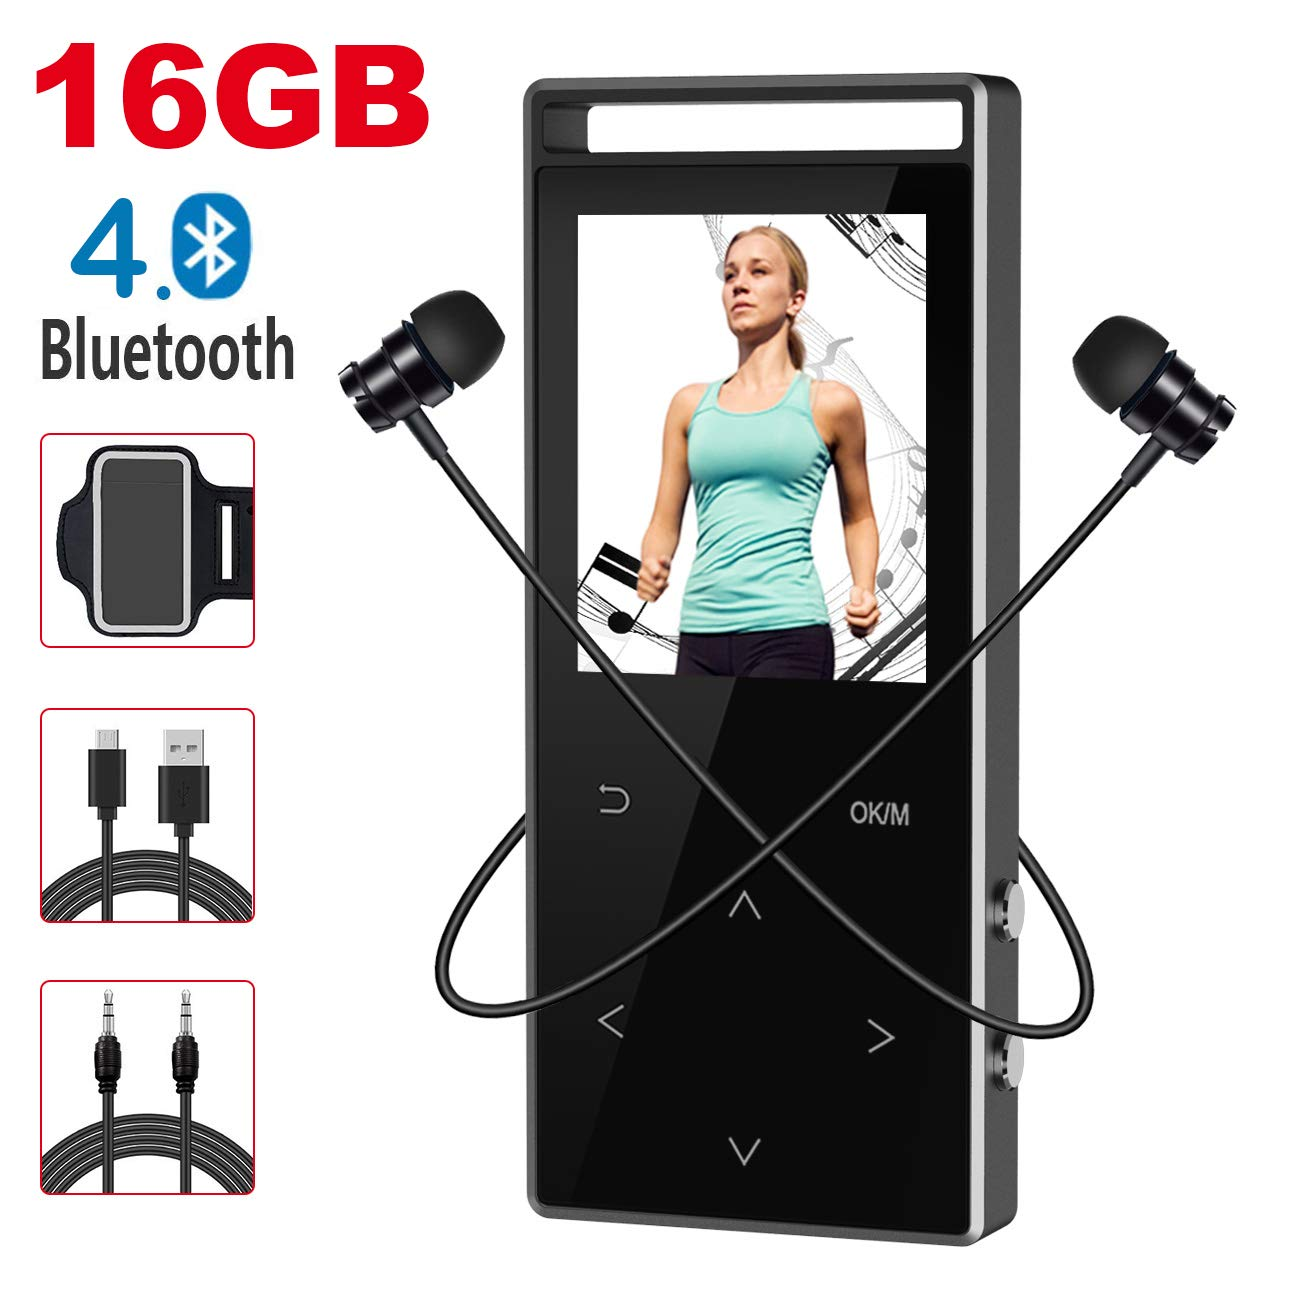 MP3 Player with Bluetooth,Digihero 16GB mp3 Player with FM Radio/Voice Recorder/Pedometer, Lossless Sound,60Hours Playback,HD Sound Quality Earphone, with Earphone Armband for Sport Running New 2018